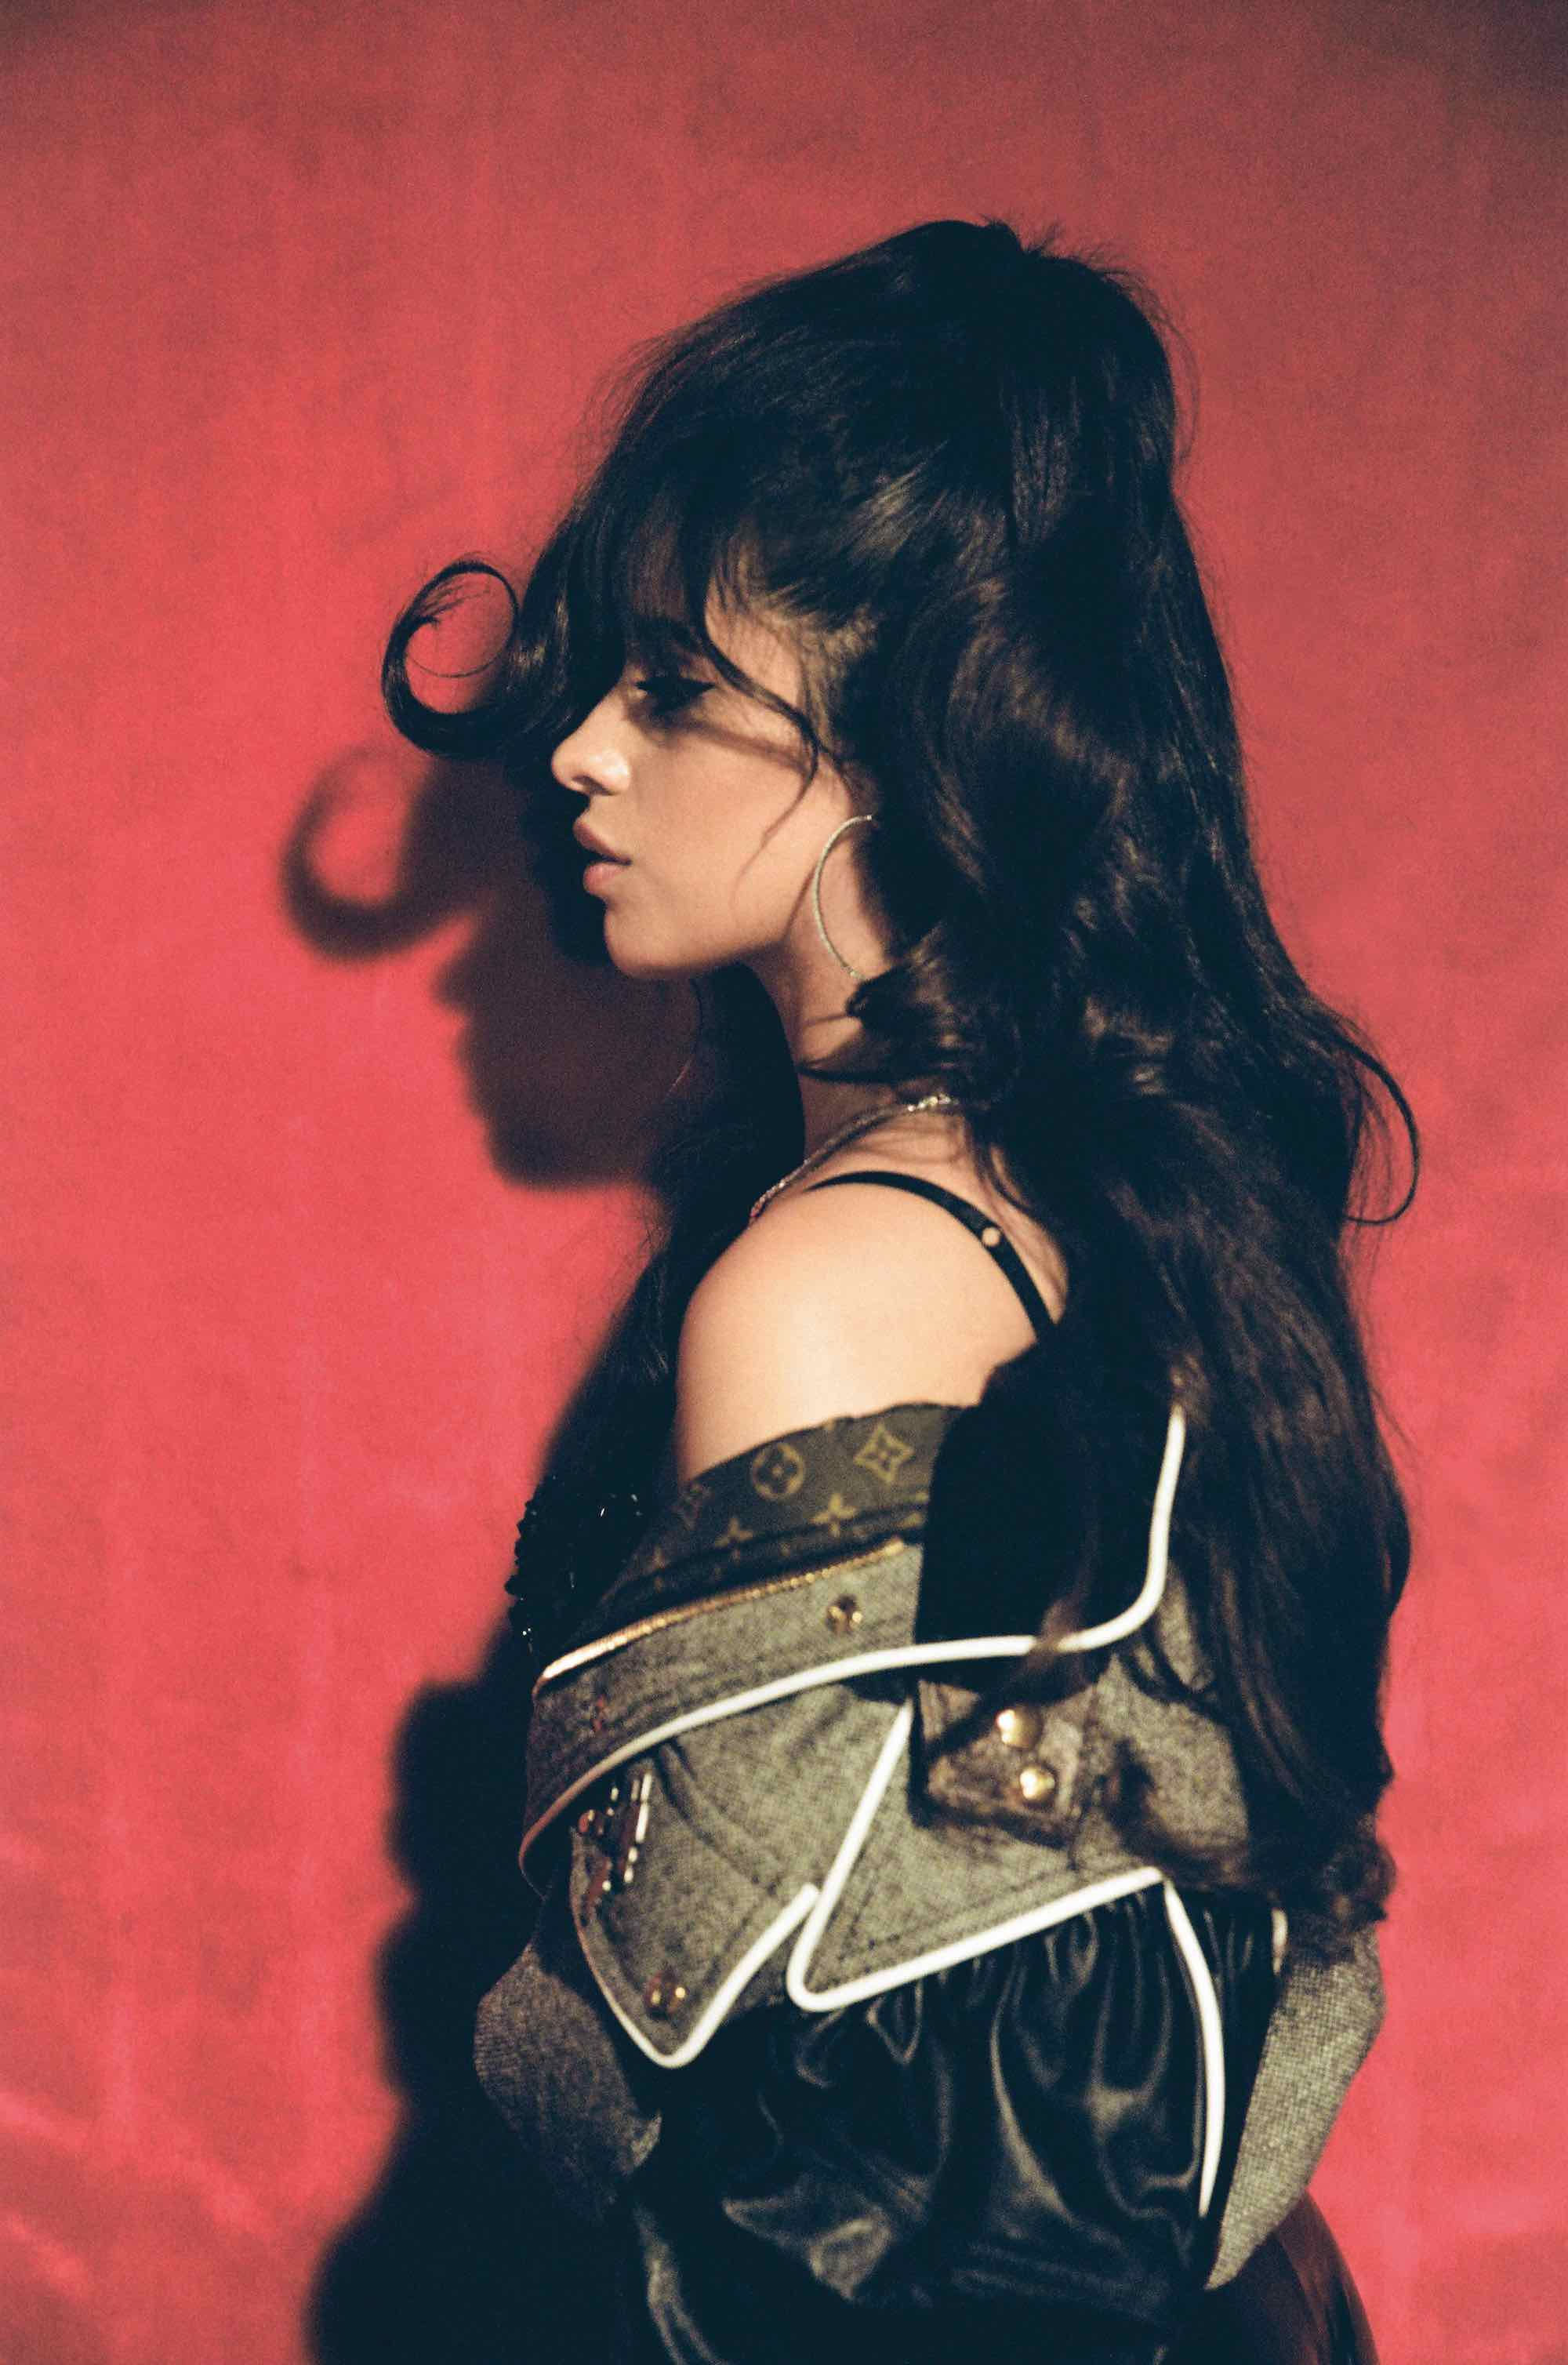 Wonderland Autumn 19 issue interview Camila Cabello hair flick 2